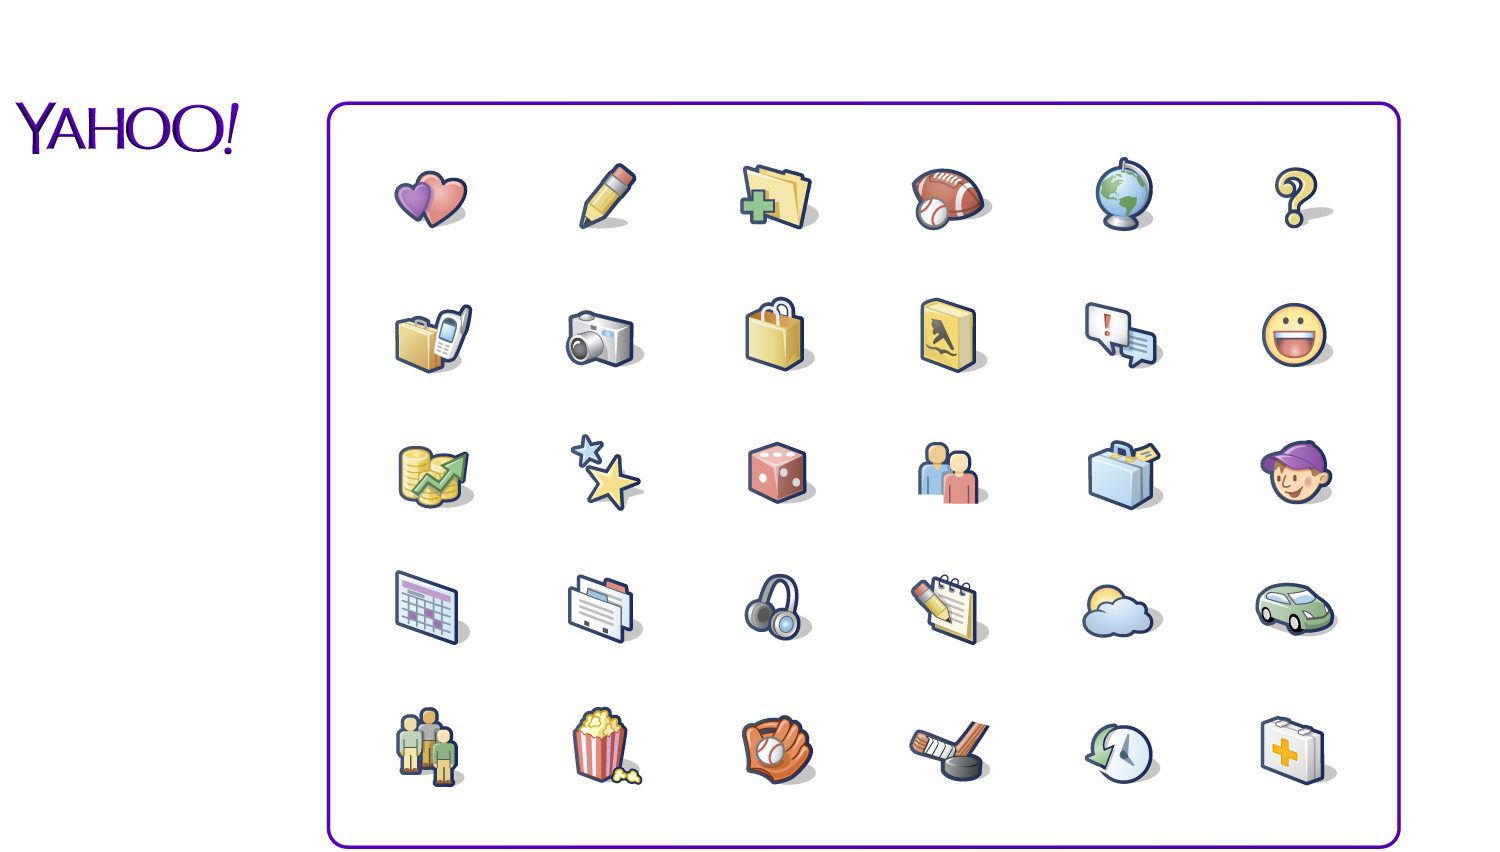 Icons for Yahoo!